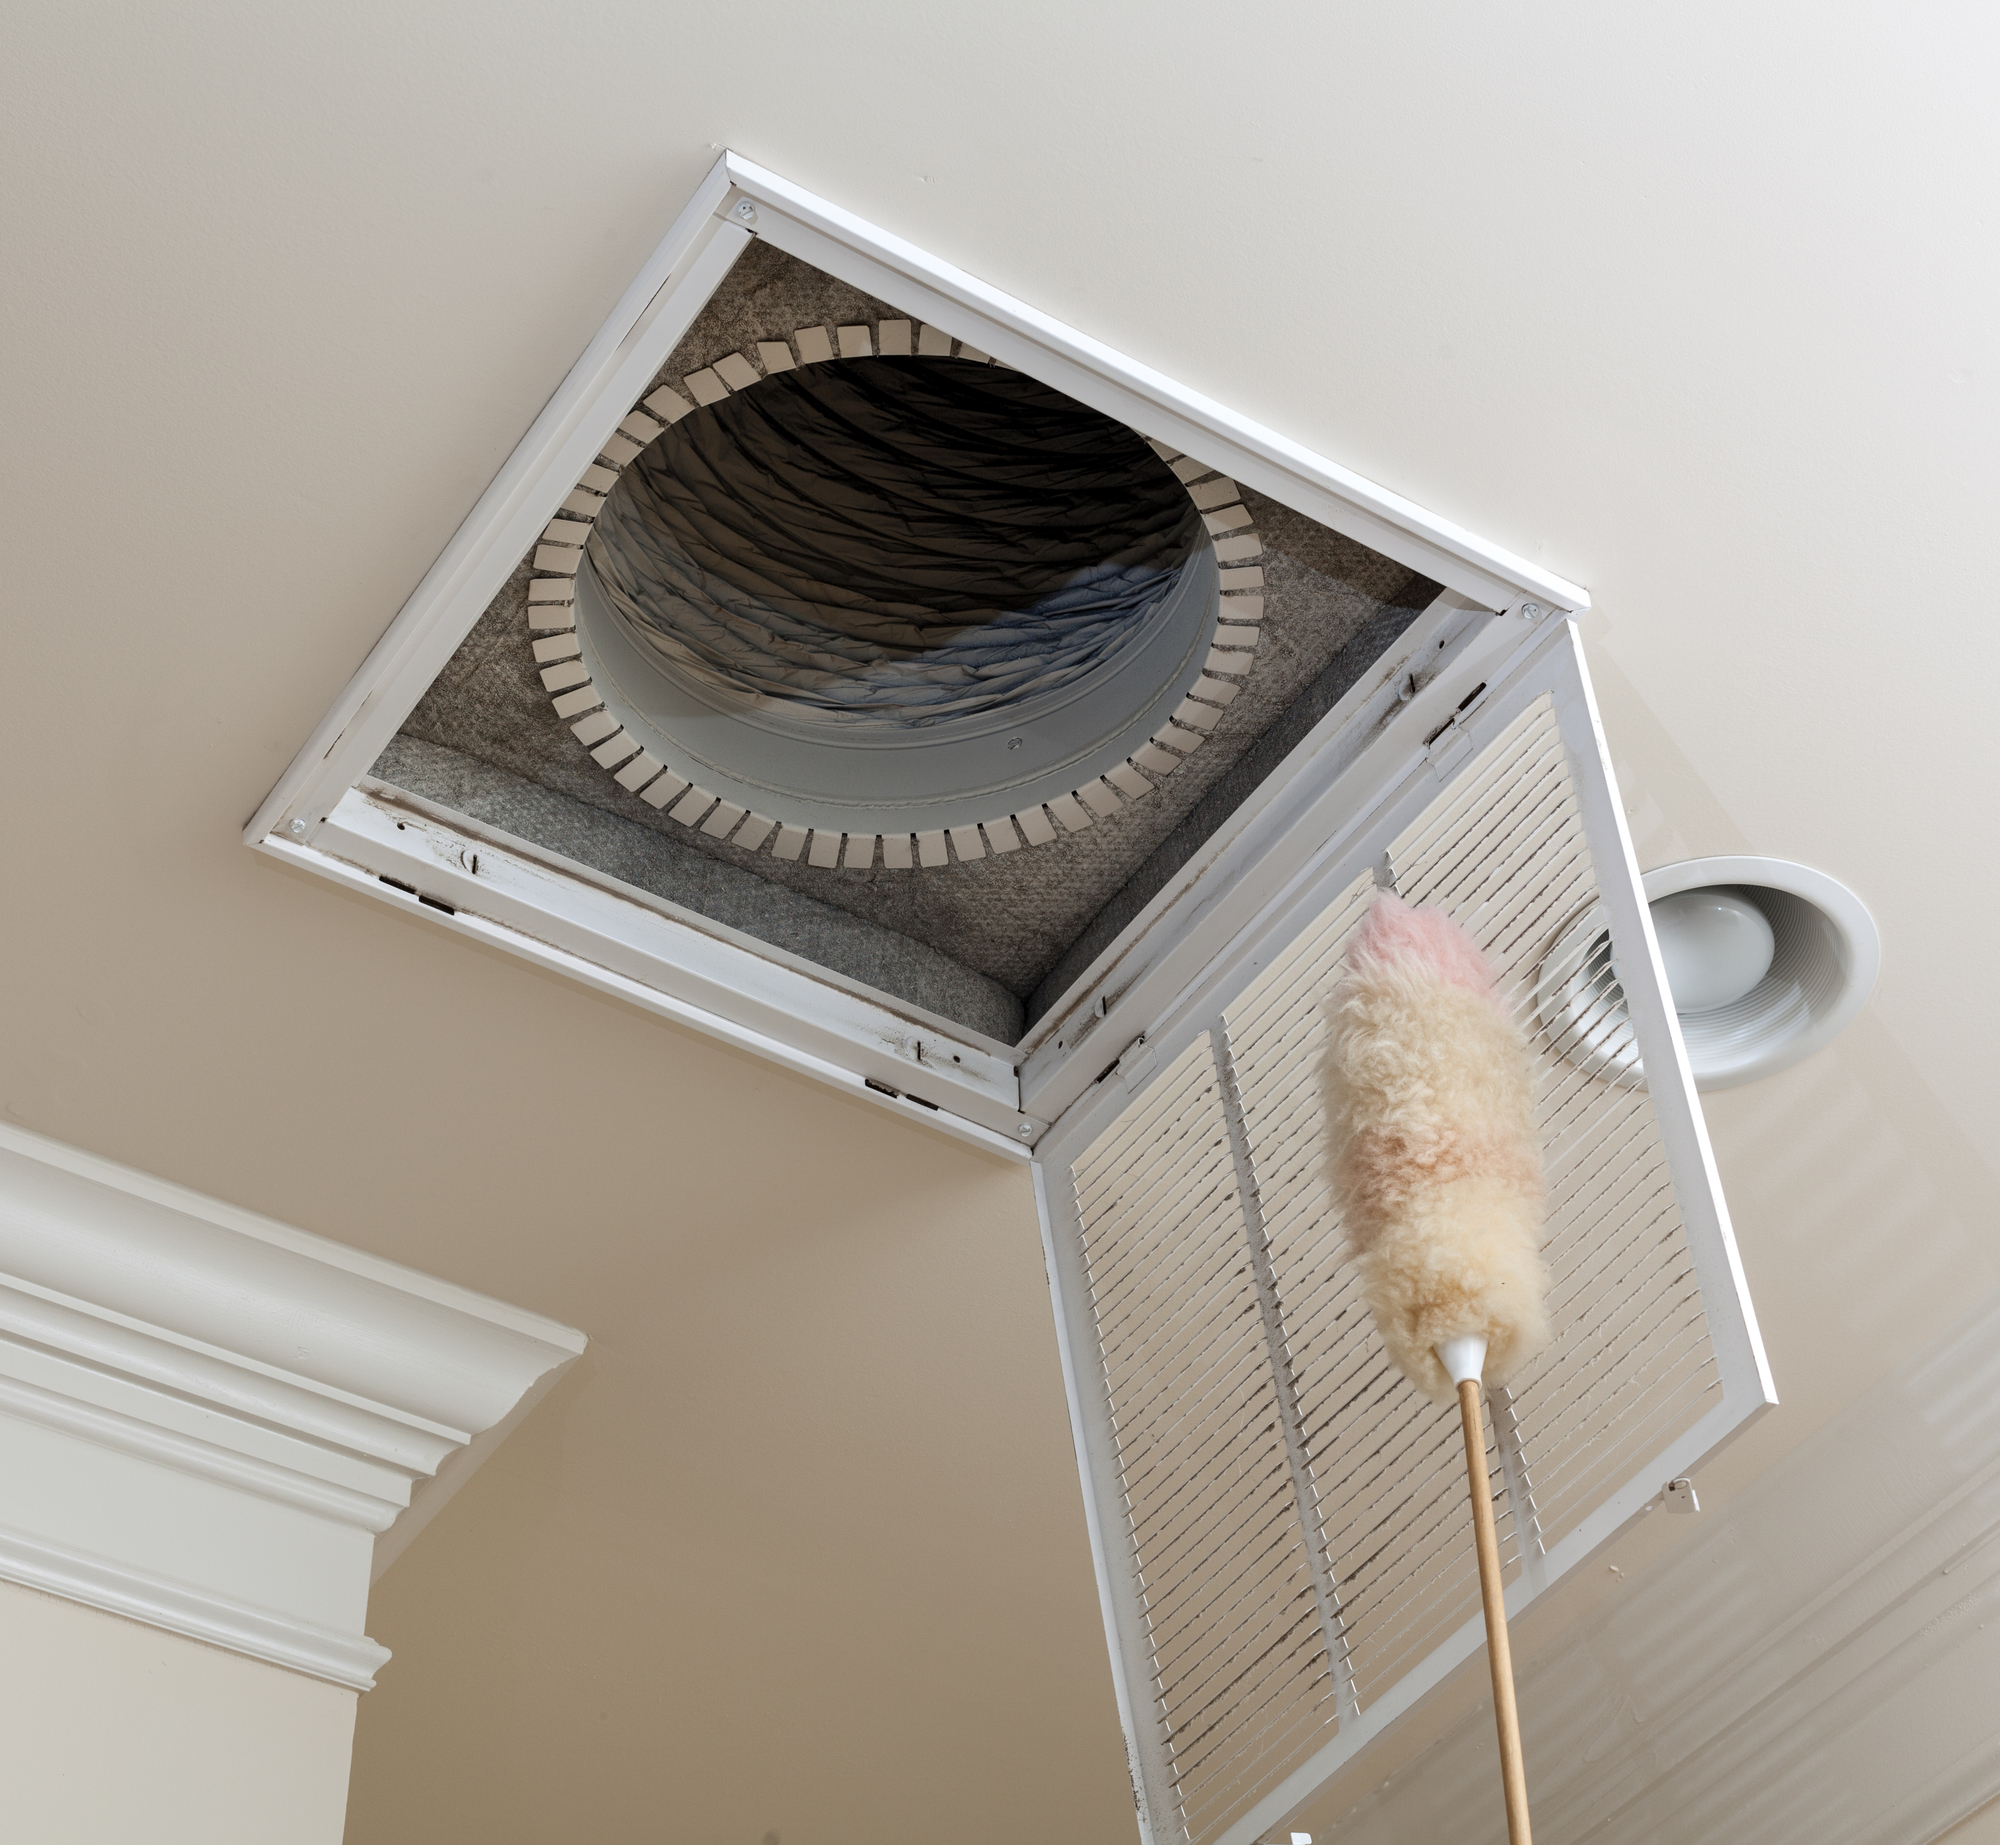 Top 3 Signs You Need Air Duct Cleaning or Replacement - Air Pro Duct